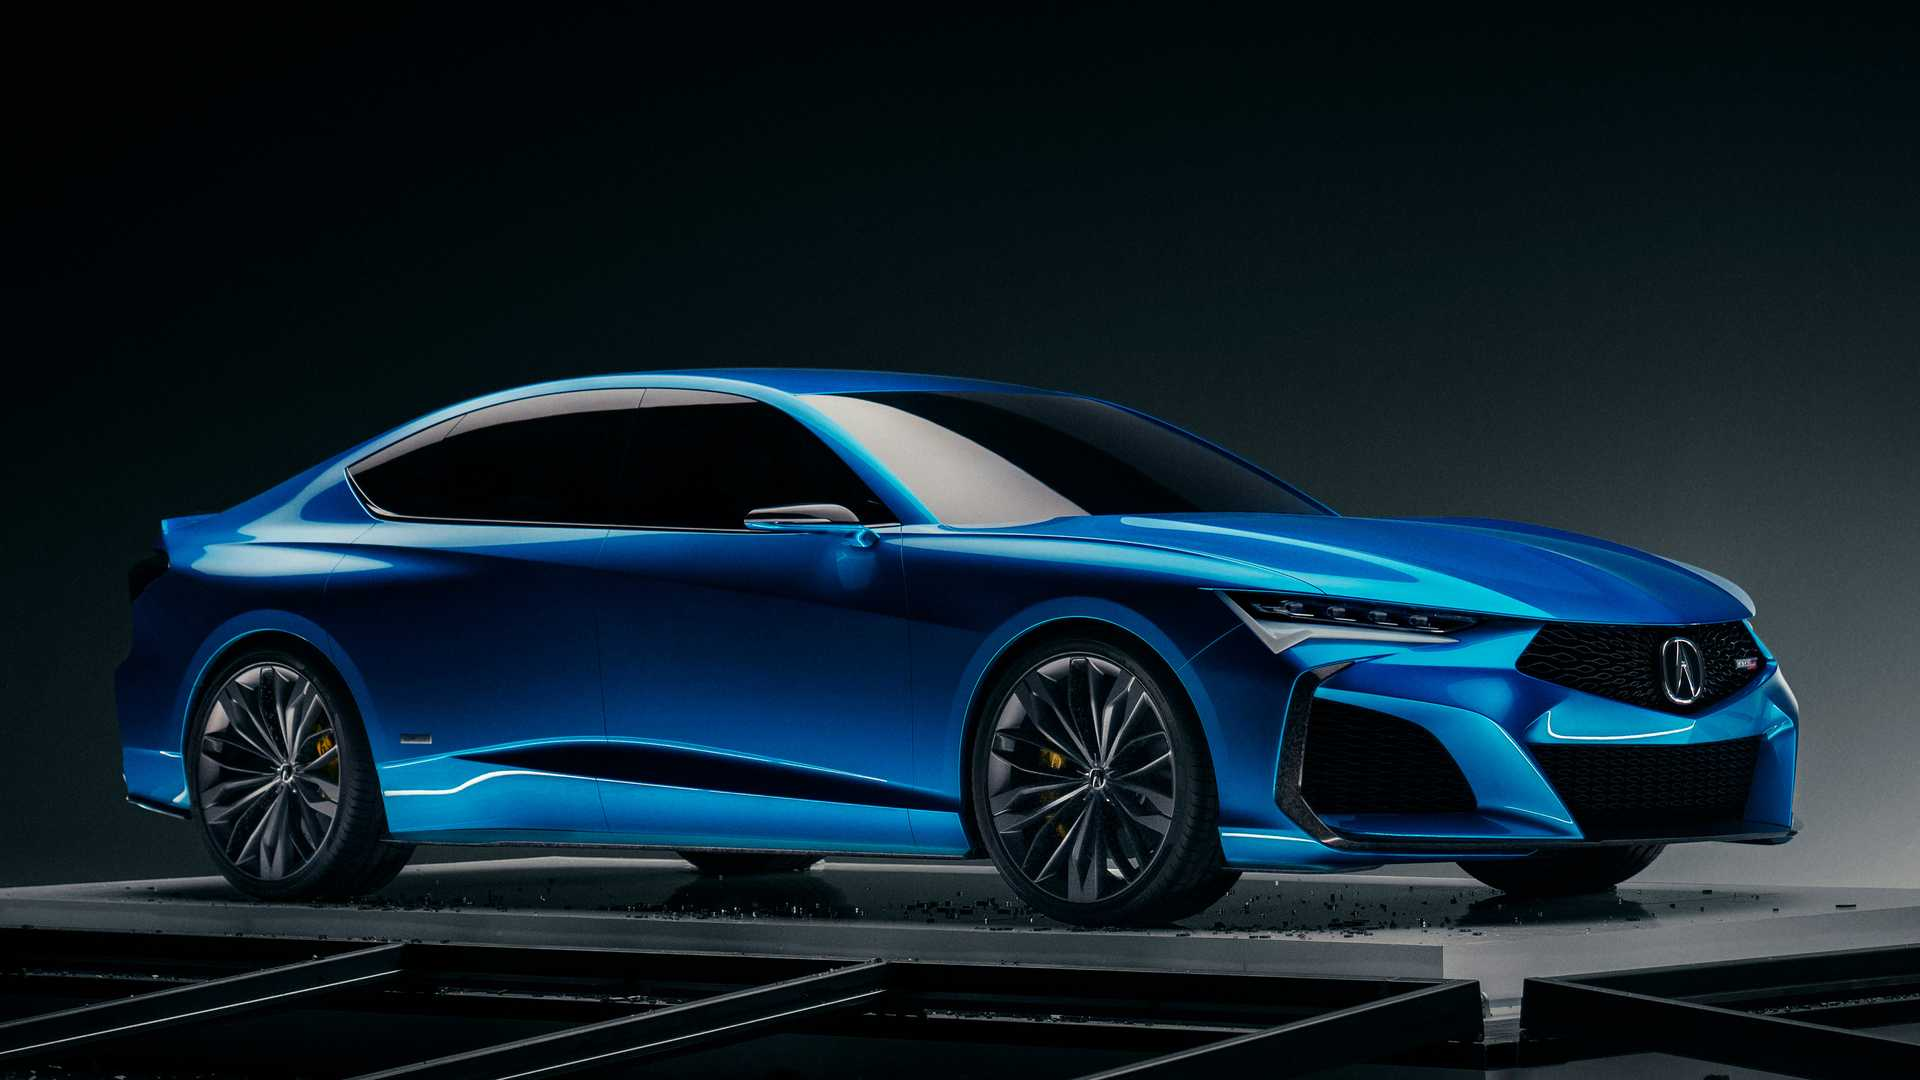 Acura Type S Concept Debuts As Sporty Vision Of Four-Door Future